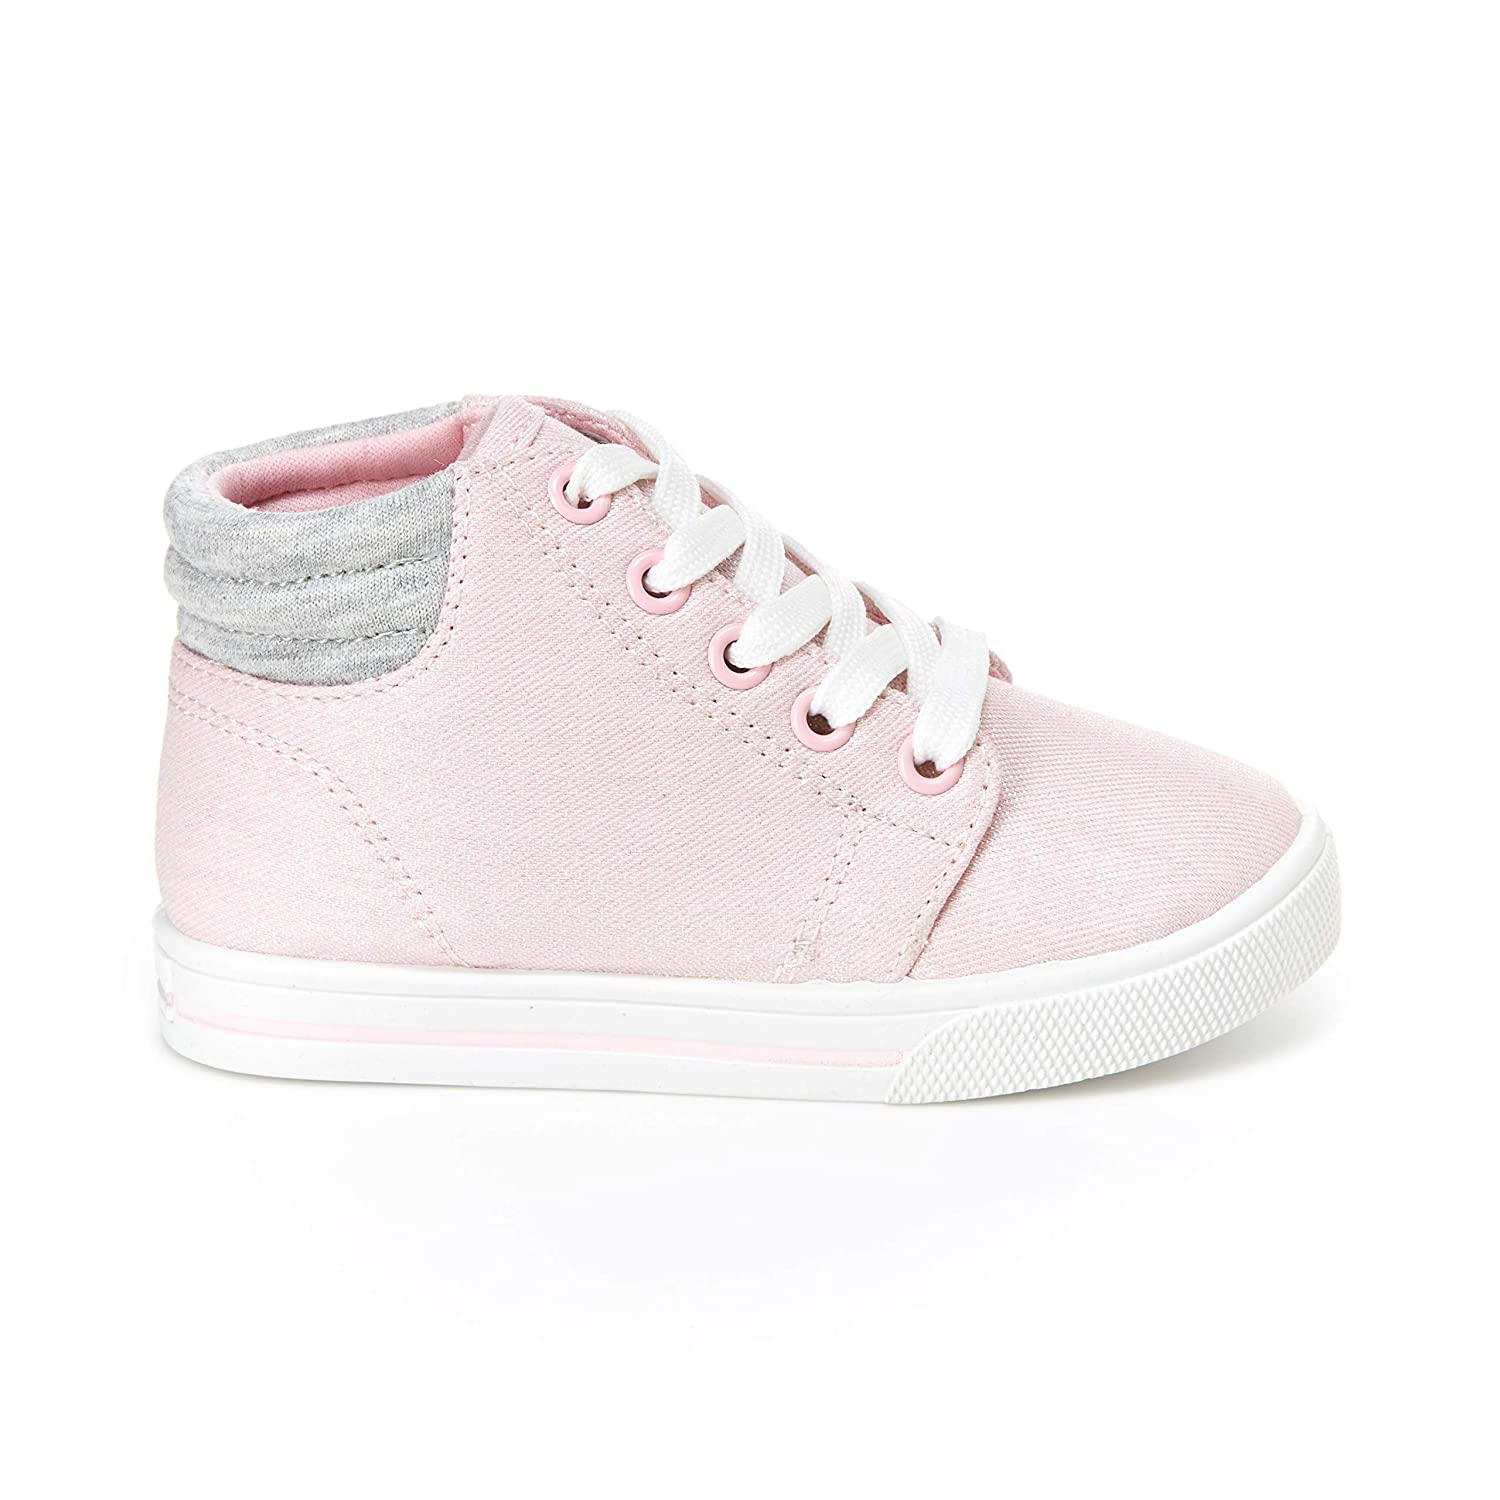 Simple Joys by Carters Toddler and Little Girls Cora Gliter High-Top Sneaker Simple Joys by Carter/'s SJF1804P 1-8 yrs